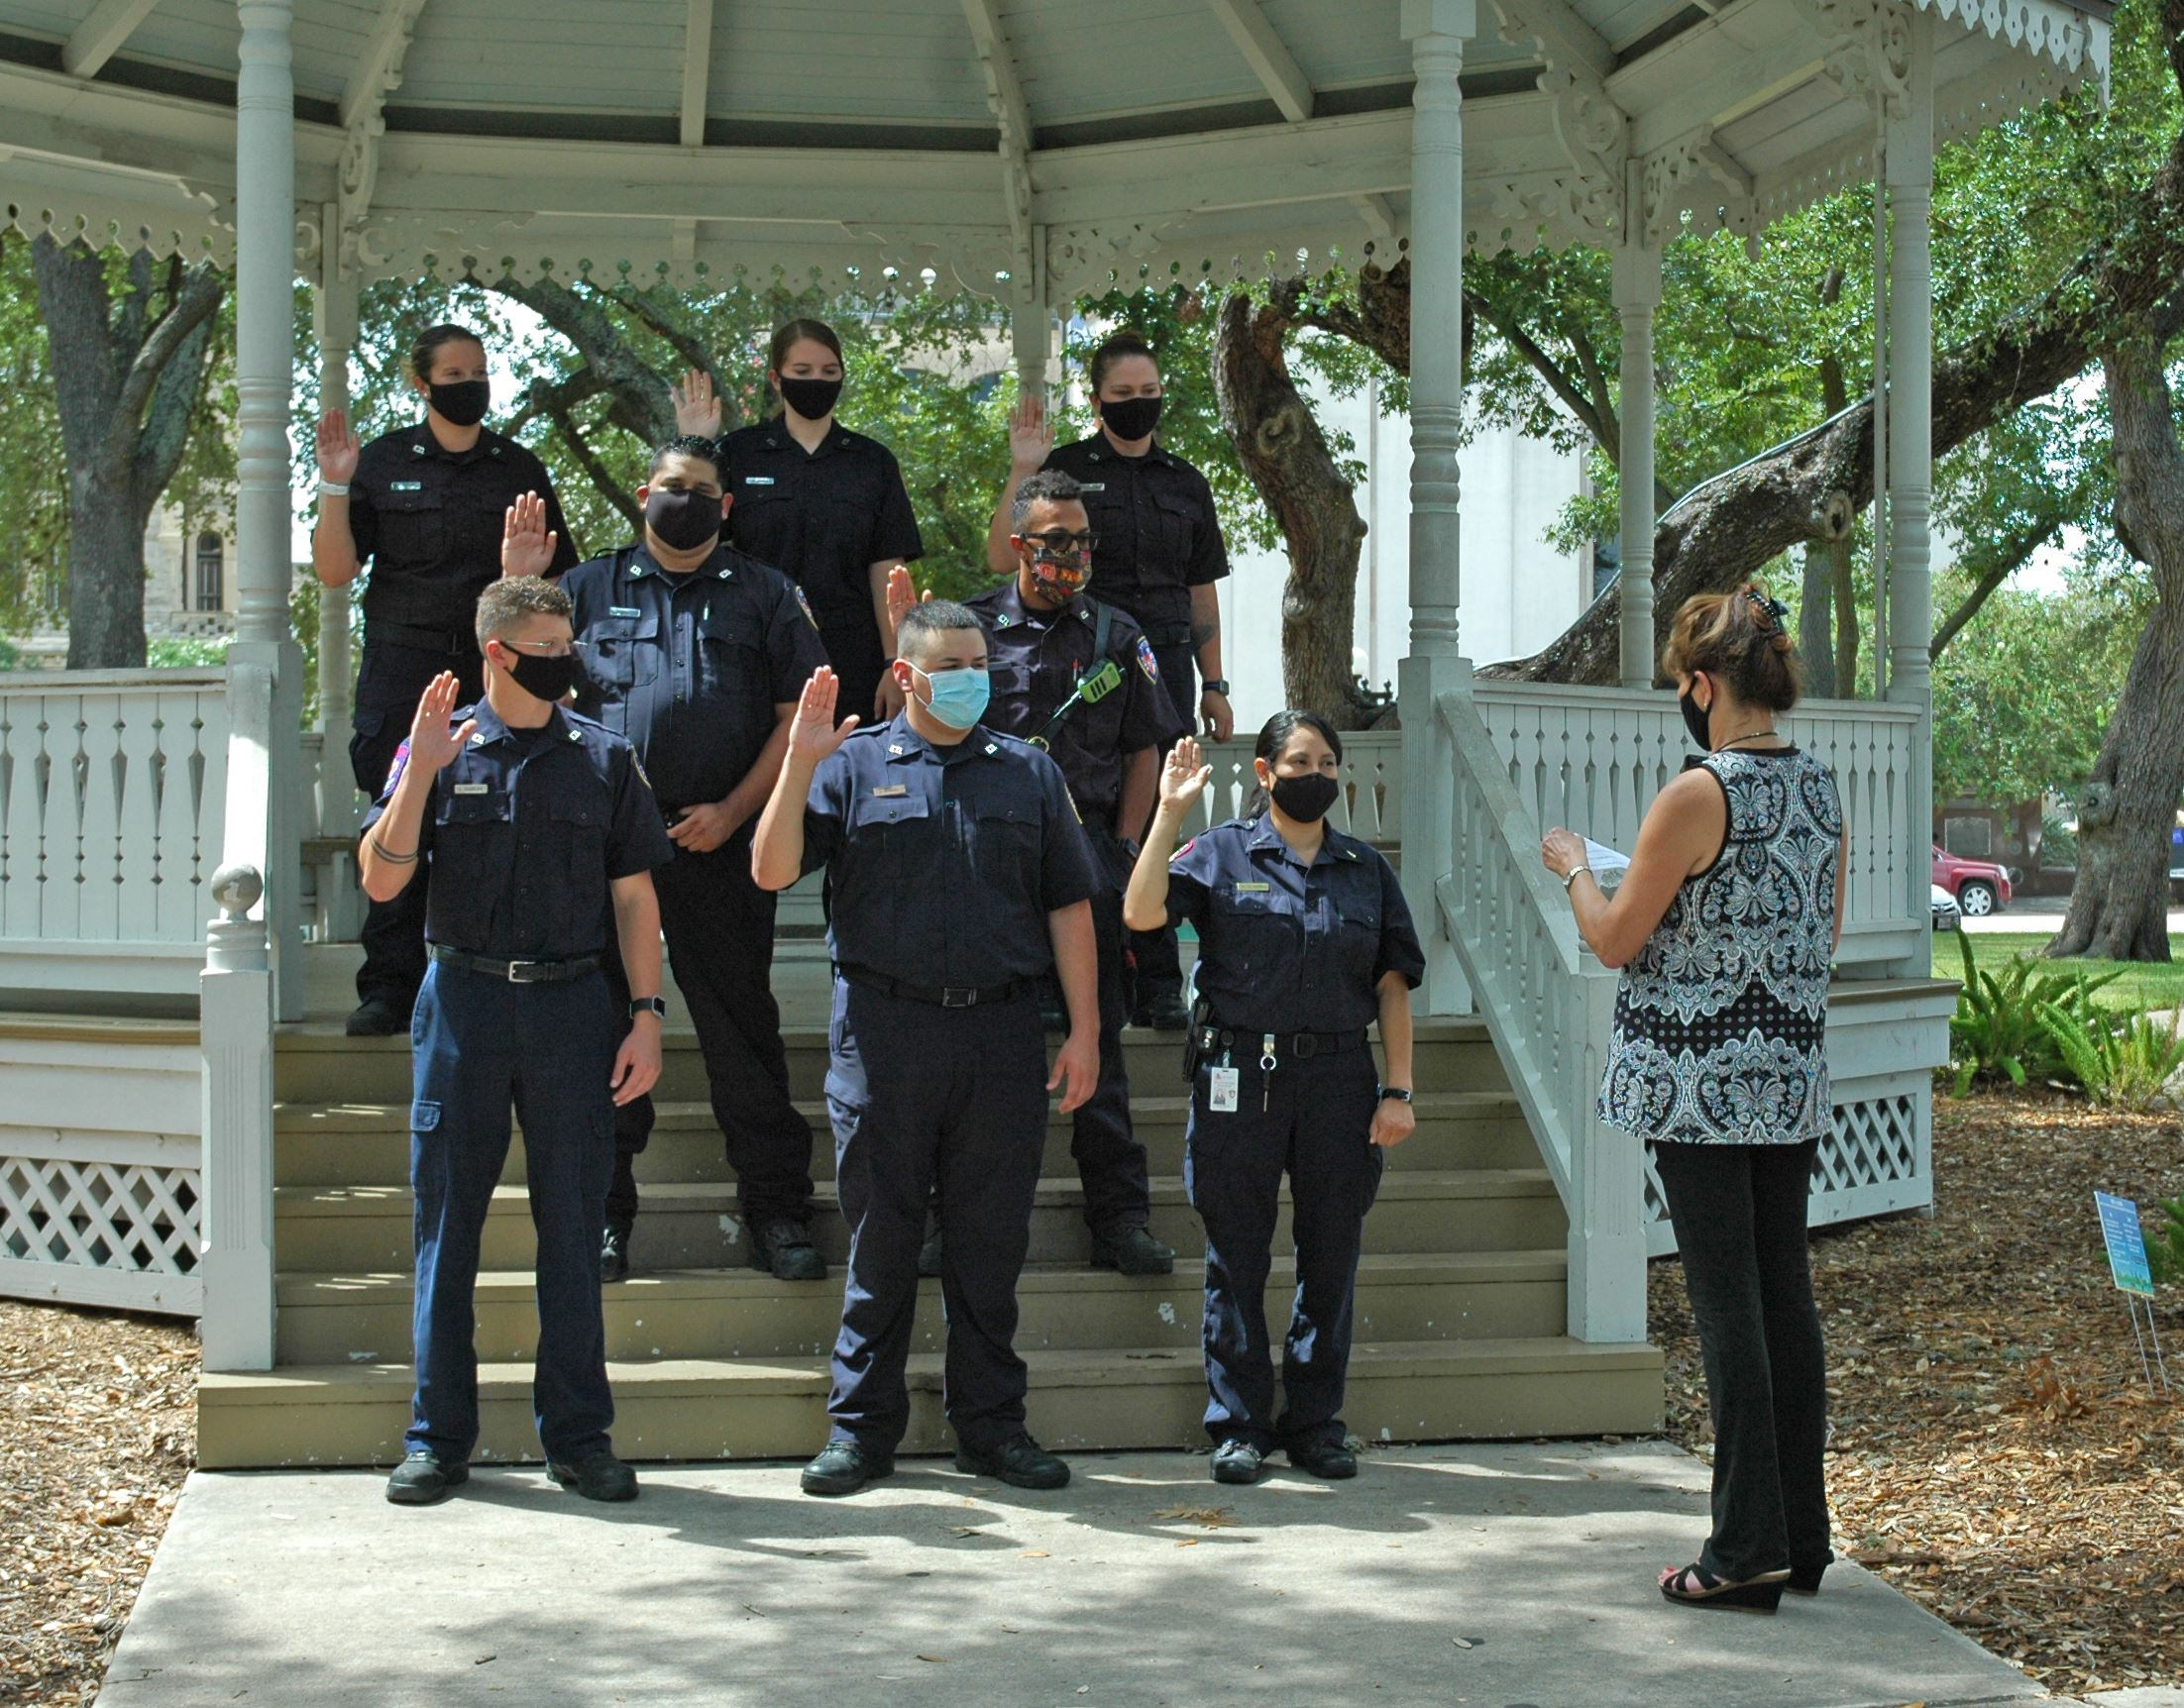 Eight fire department recruits are sworn in at the DeLeon Plaza gazebo